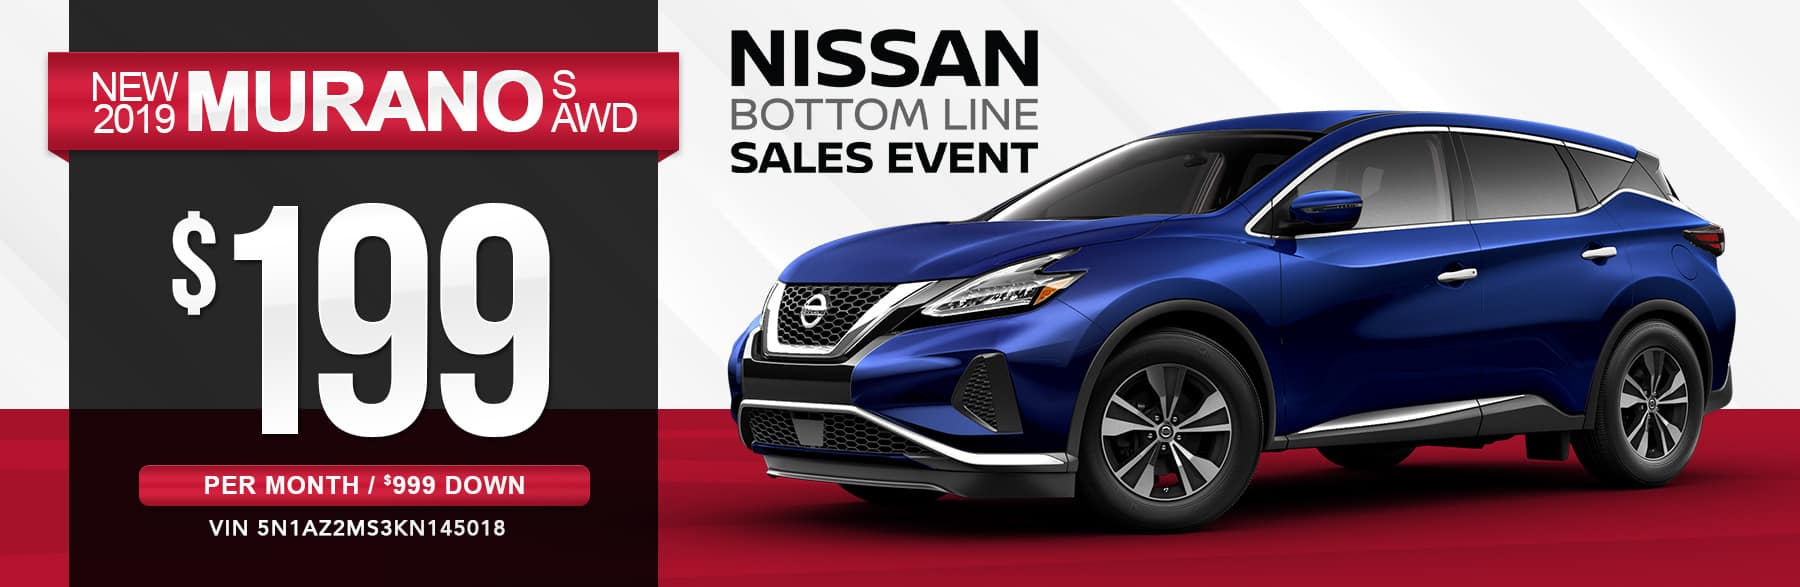 Eden Prairie Nissan - Nissan Dealer MN near Minneapolis MN | St